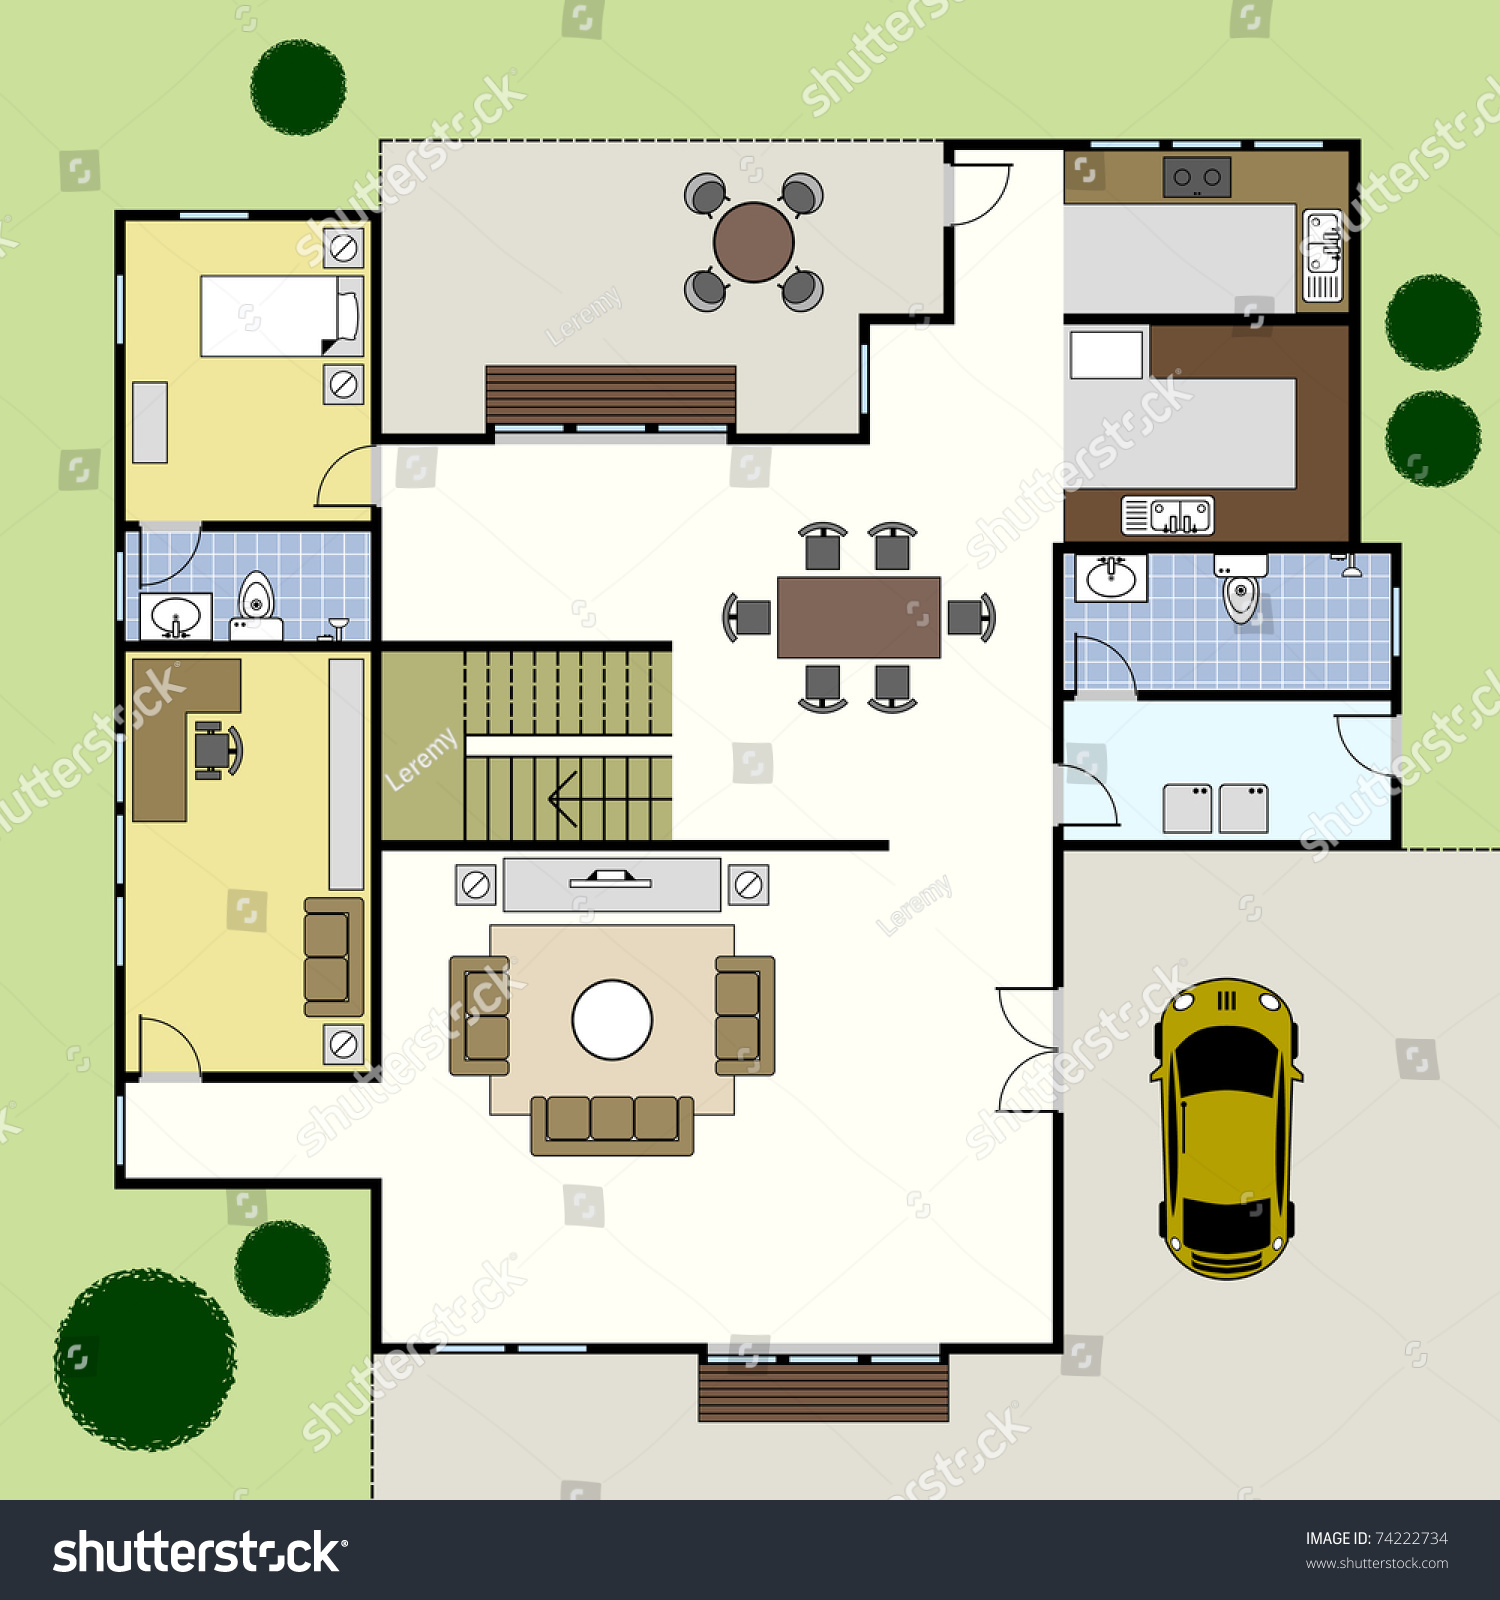 Ground floor plan floorplan house home stock vector House layout plan